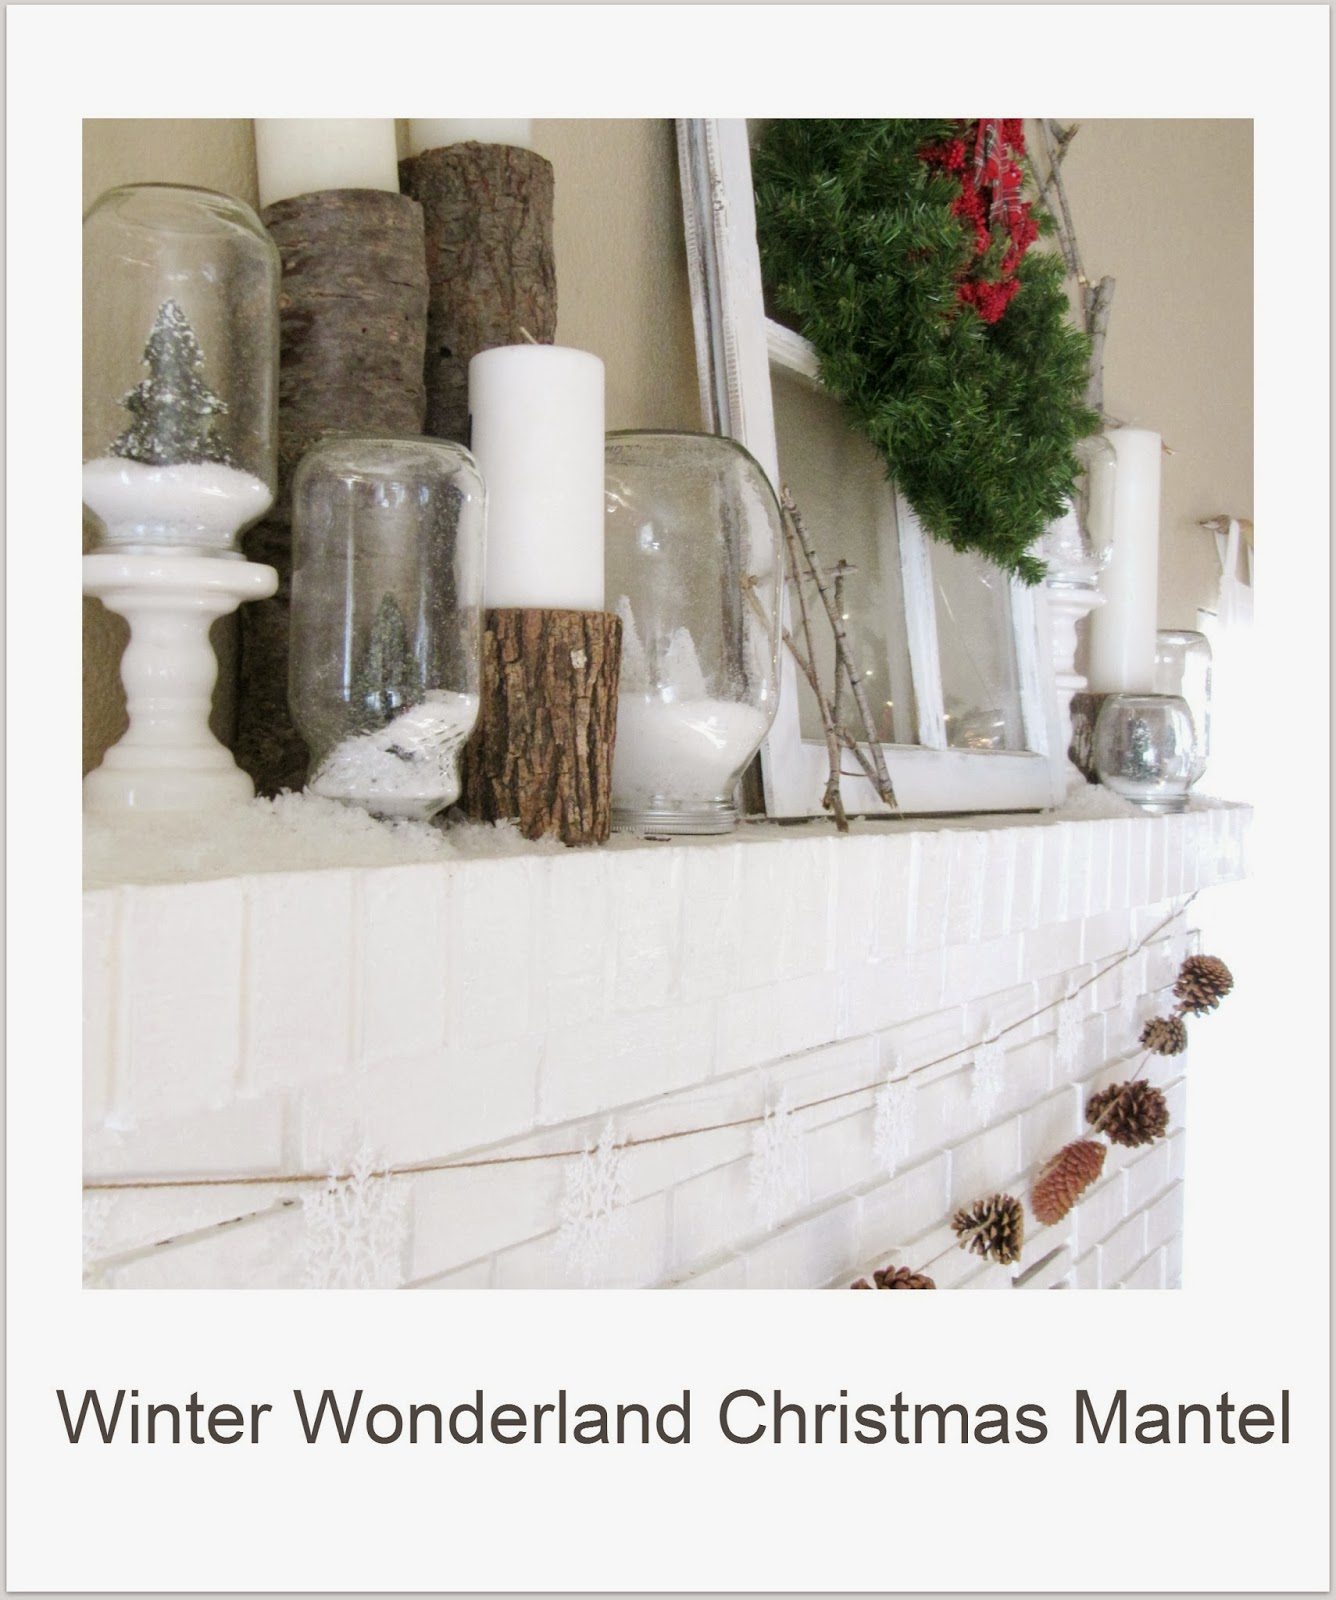 http://thewickerhouse.blogspot.com/2012/12/my-winter-wonderland-christmas-mantel.html